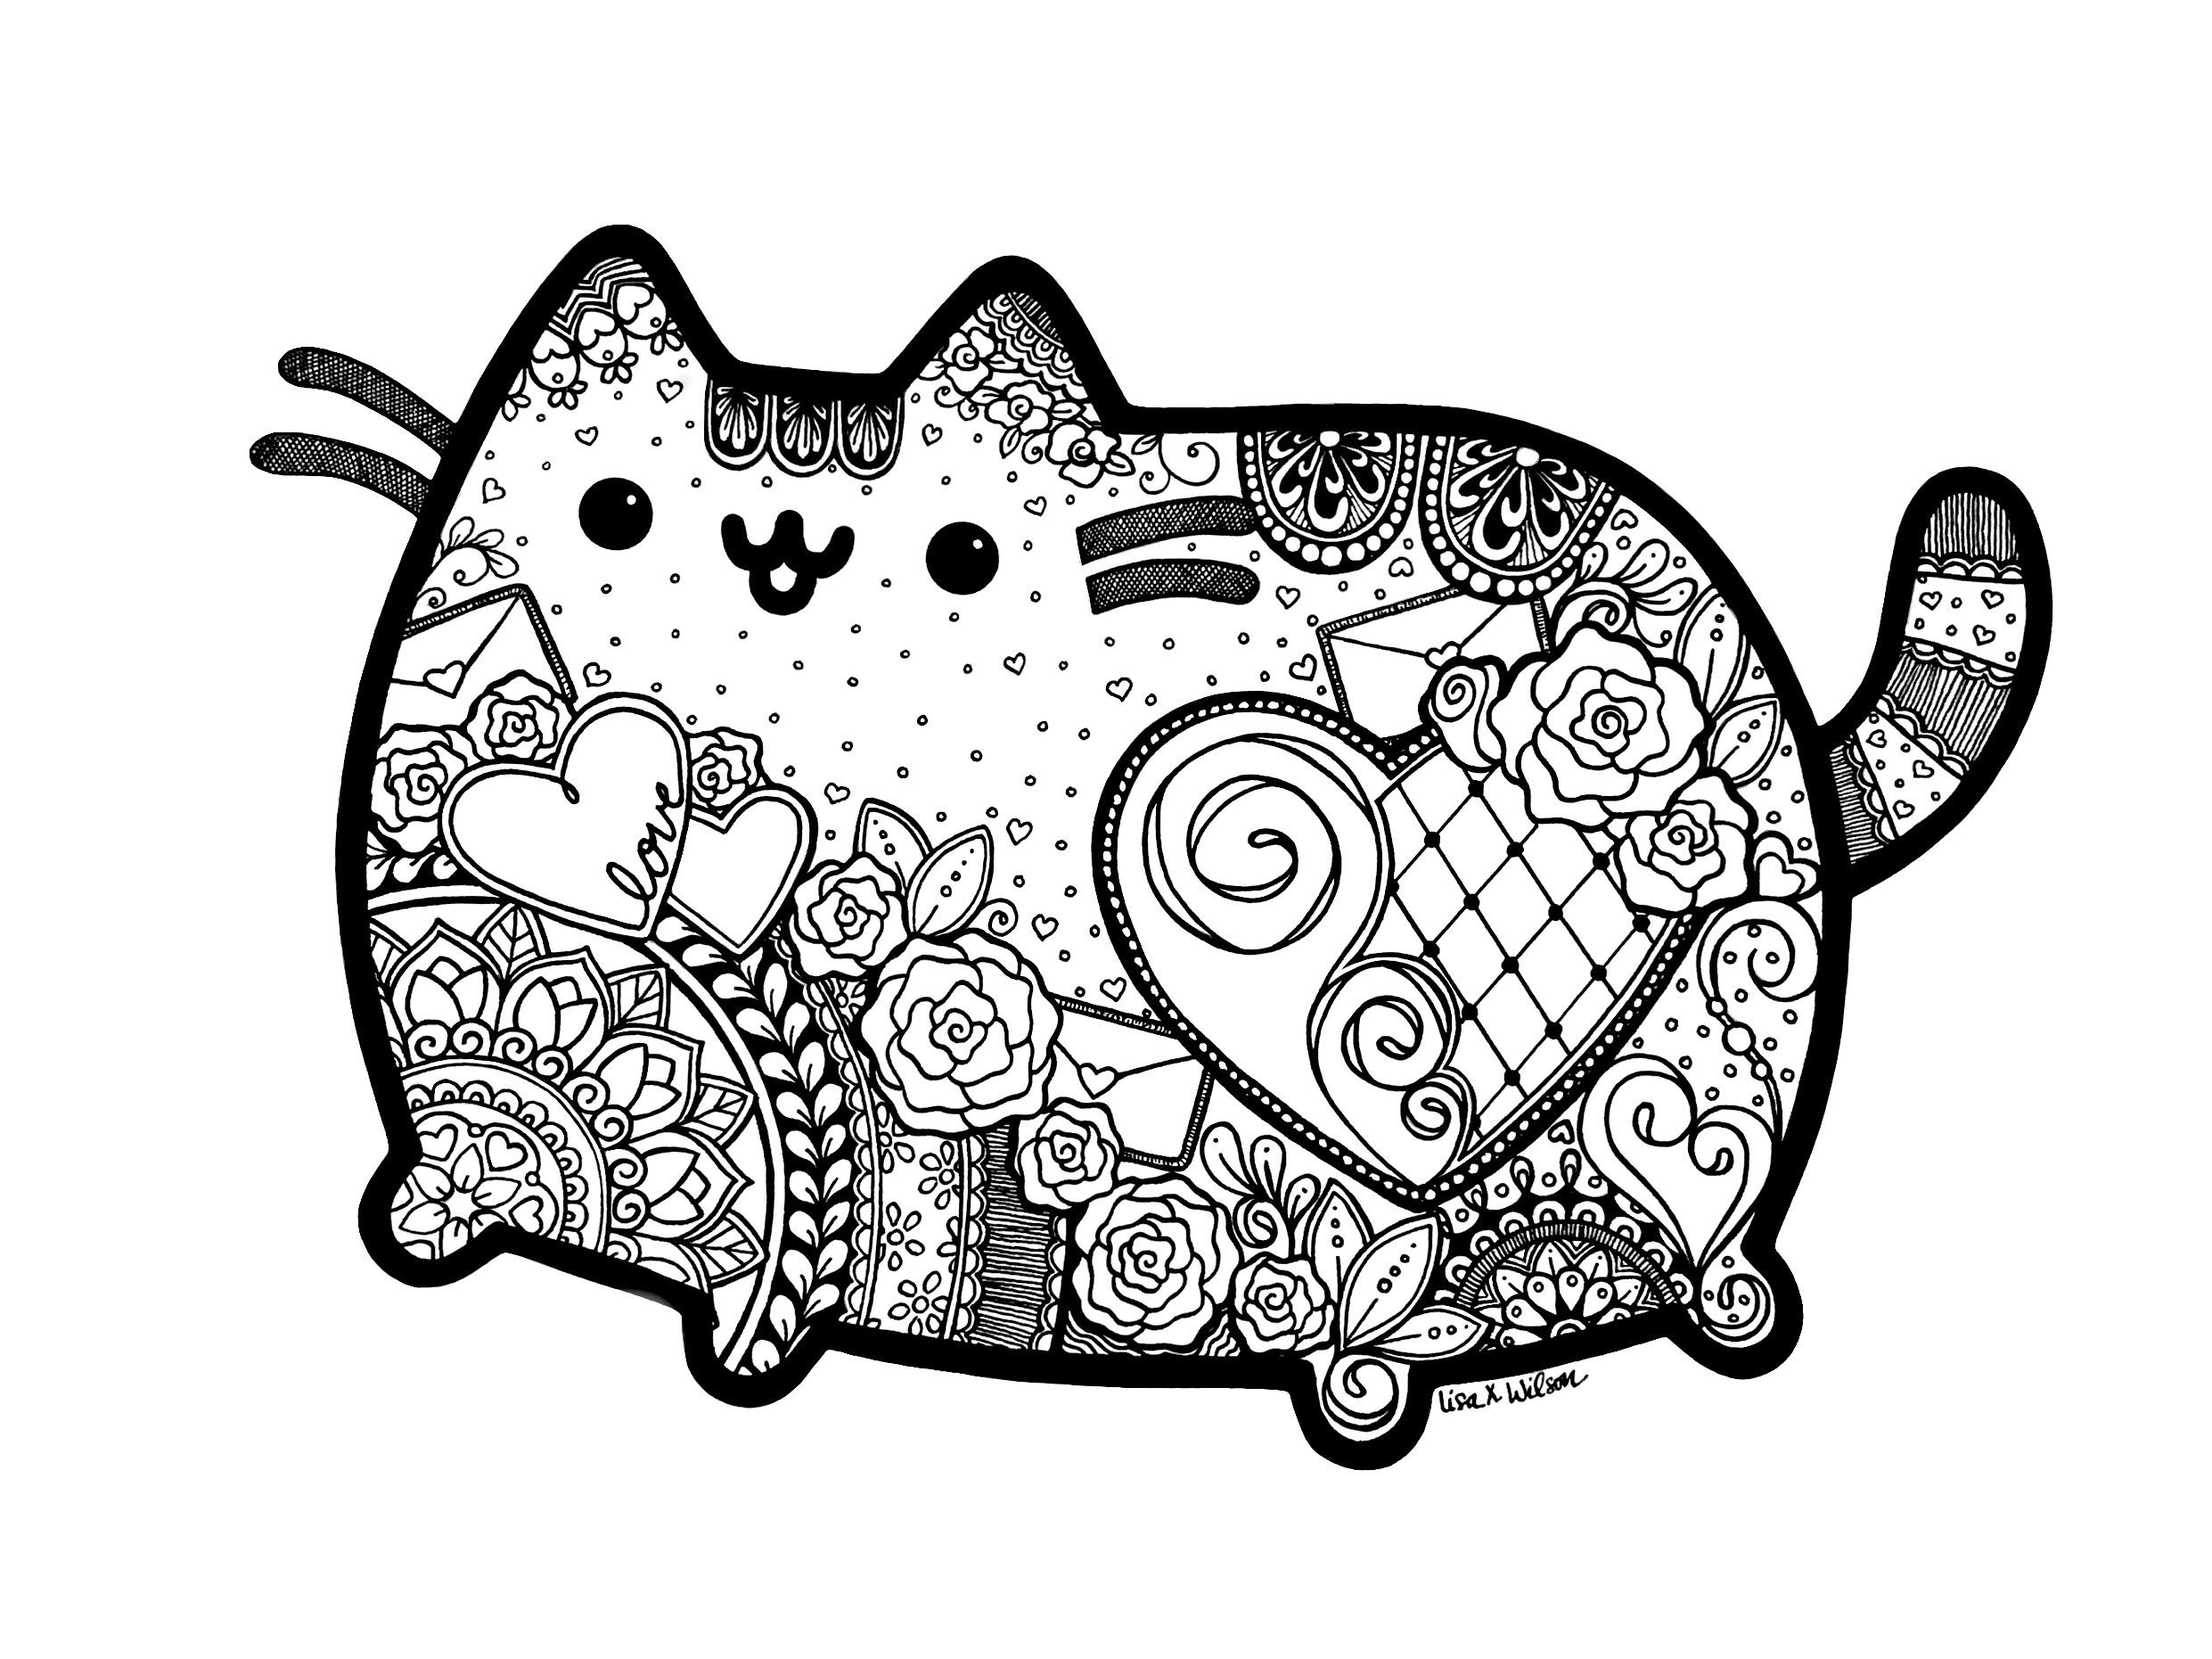 Pusheen inspired zentangle with mandalas | Zentangle Doodles ...